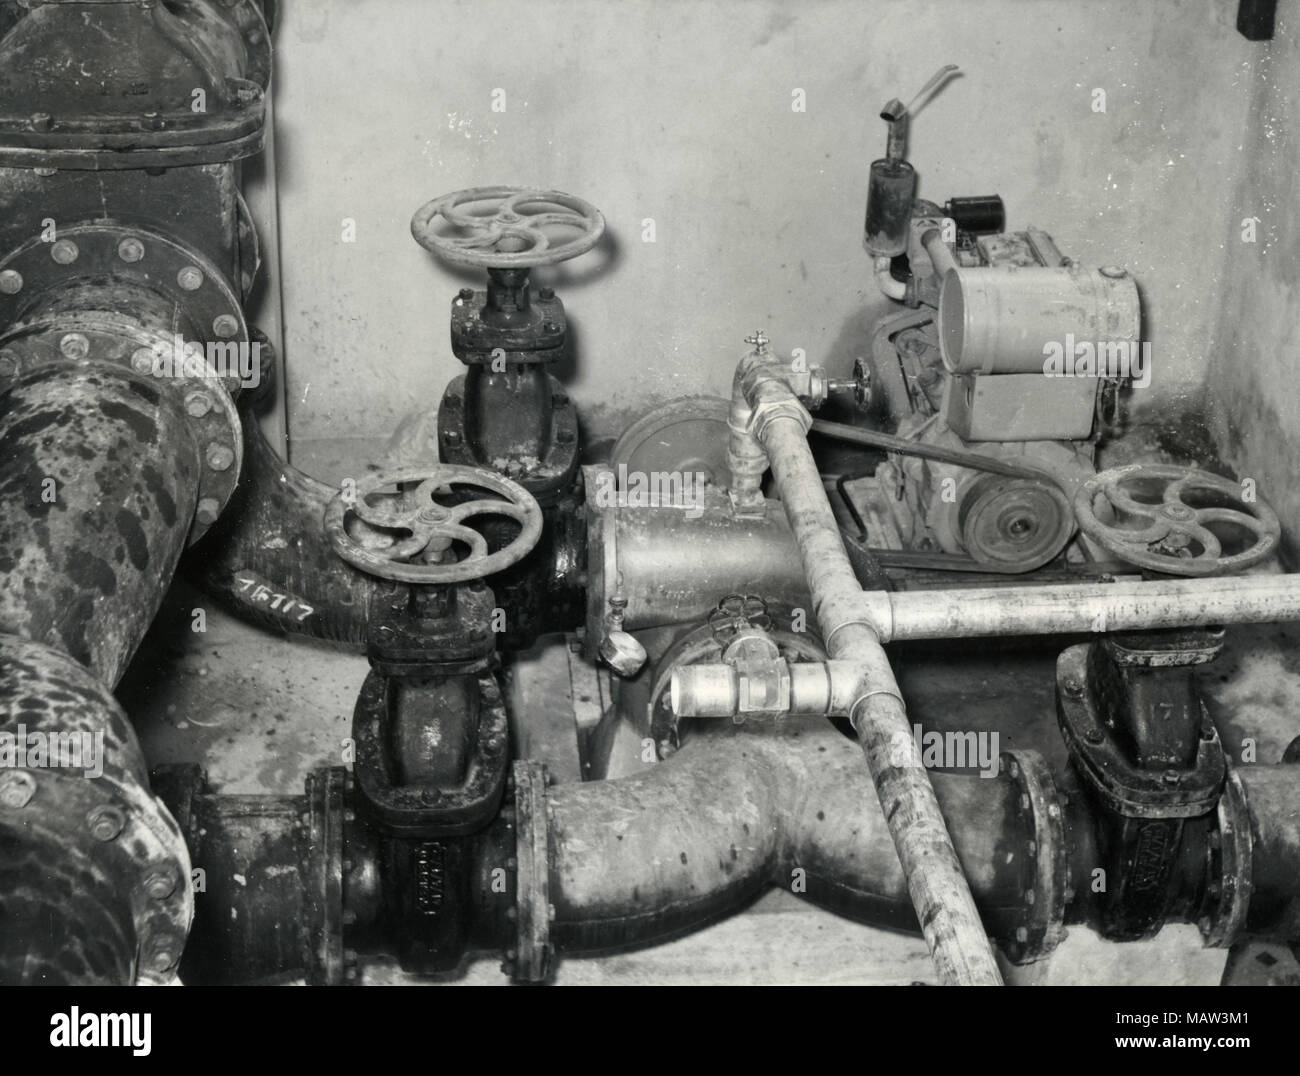 Diesel driven pumps in Pump Station, Rhodesian Selection Trust, Kafue Pilot Polder, Zambia, South Rhodesia 1957 - Stock Image